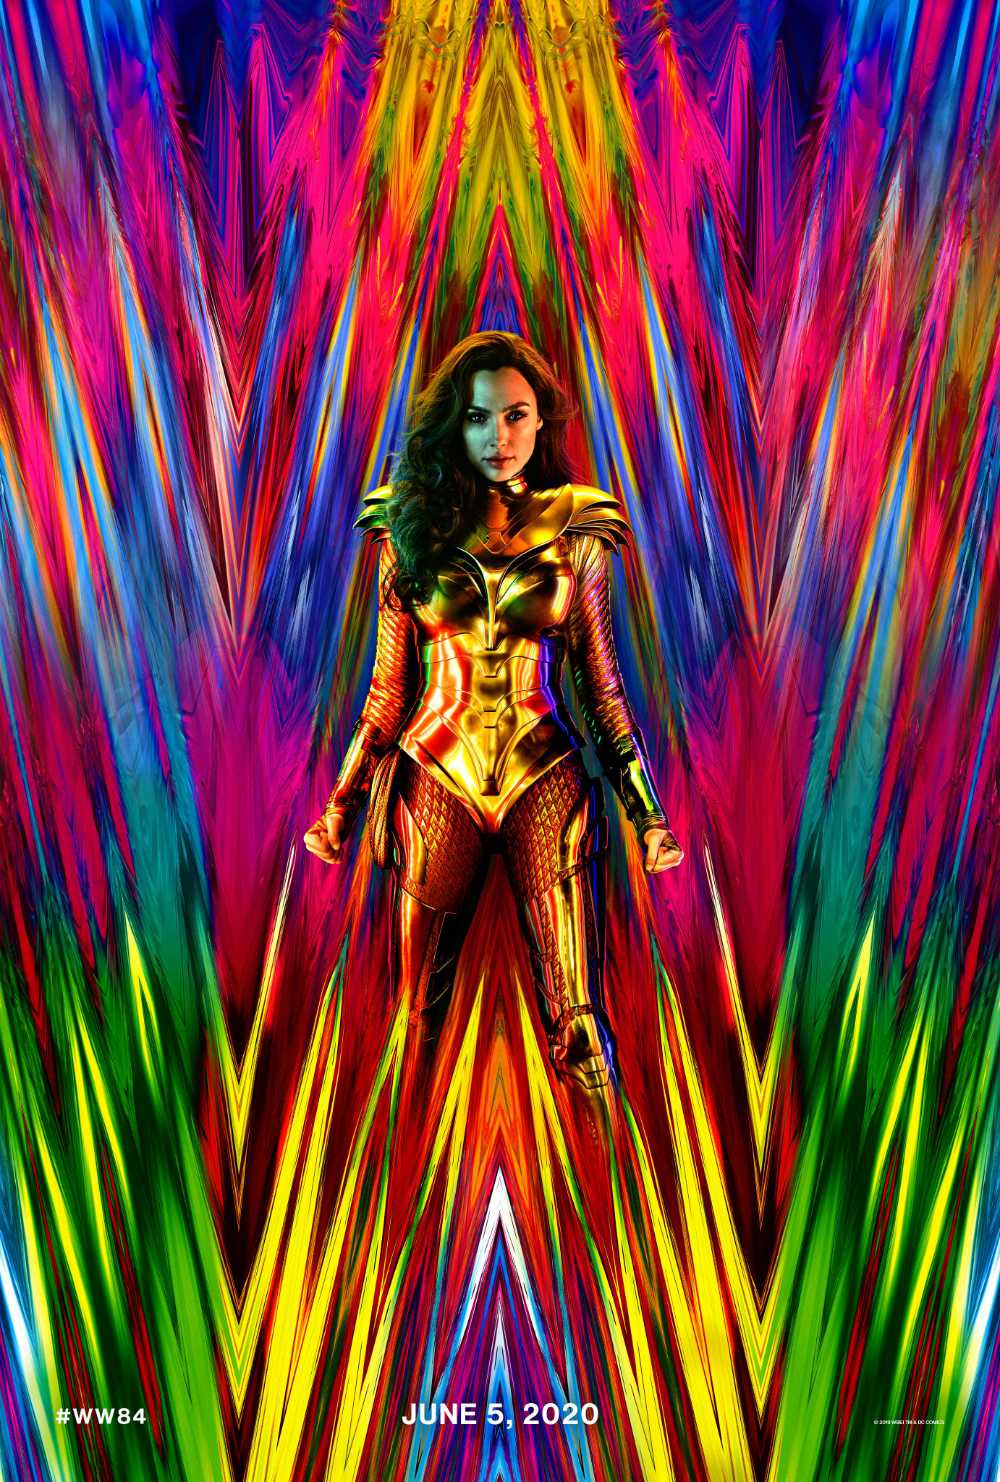 Notes On A Film: Wonder Woman 1984